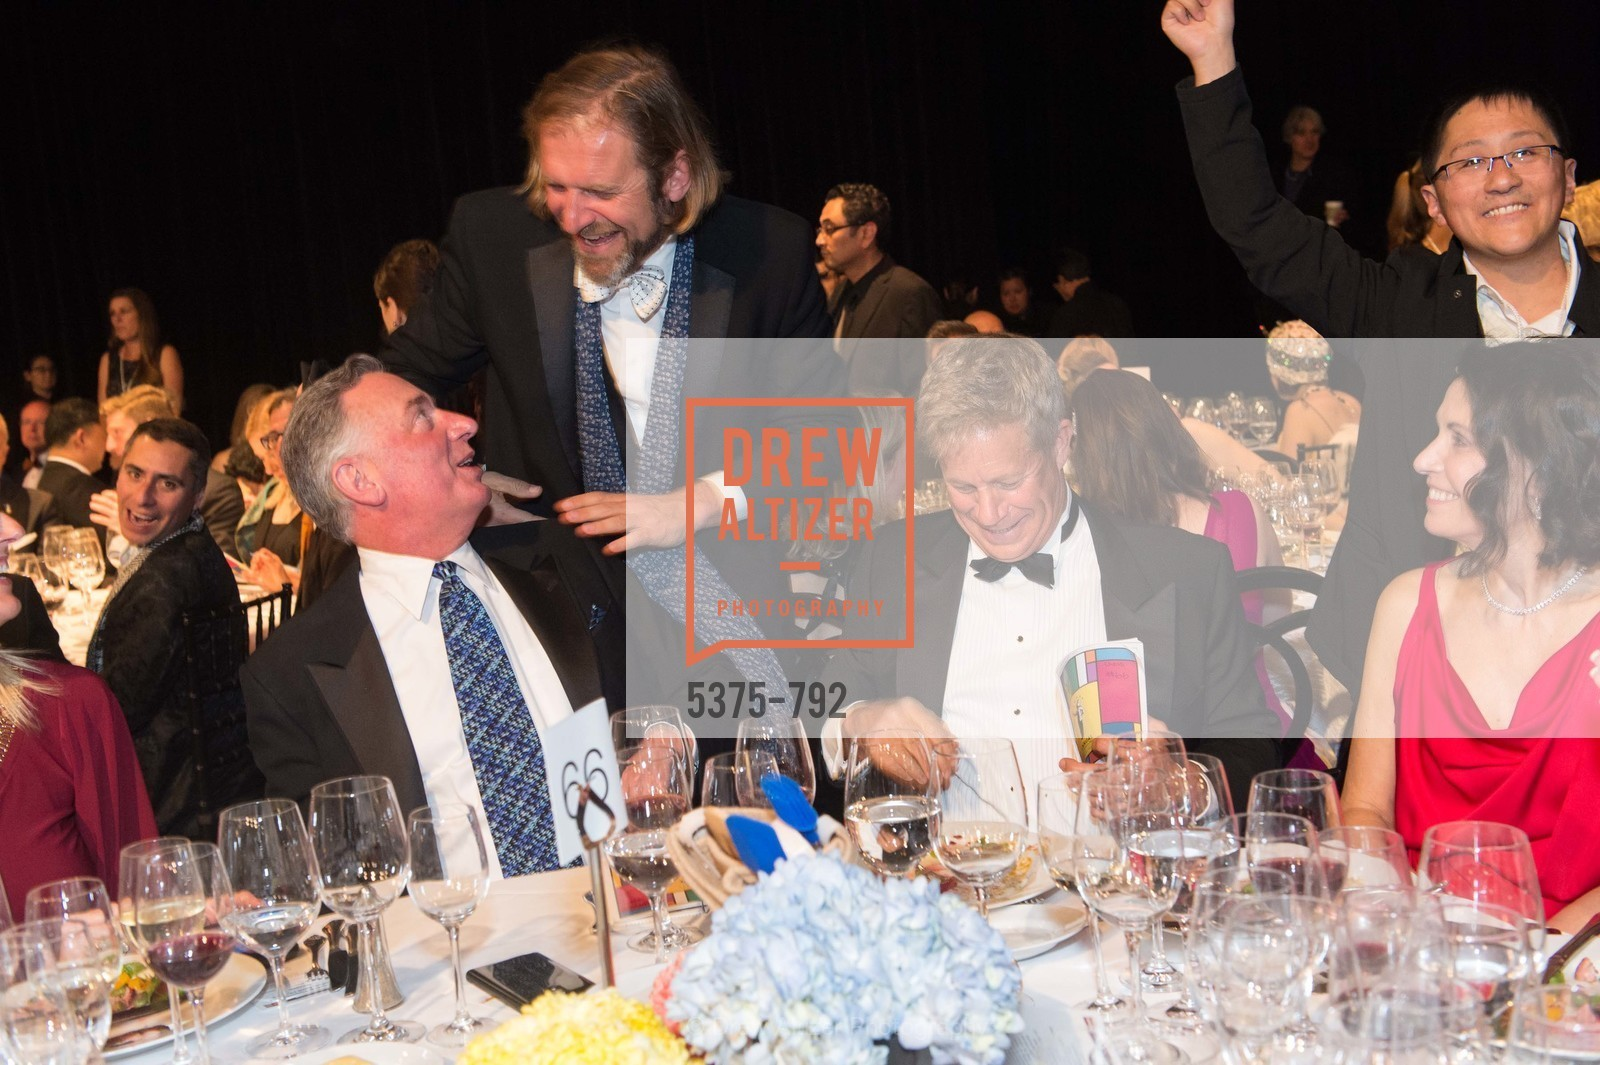 Ian Sobieski, Steve Chess, Lois Chess, MEALS ON WHEELS OF SAN FRANCISCO'S 28th Annual Star Chefs and Vintners Gala, US, April 19th, 2015,Drew Altizer, Drew Altizer Photography, full-service agency, private events, San Francisco photographer, photographer california